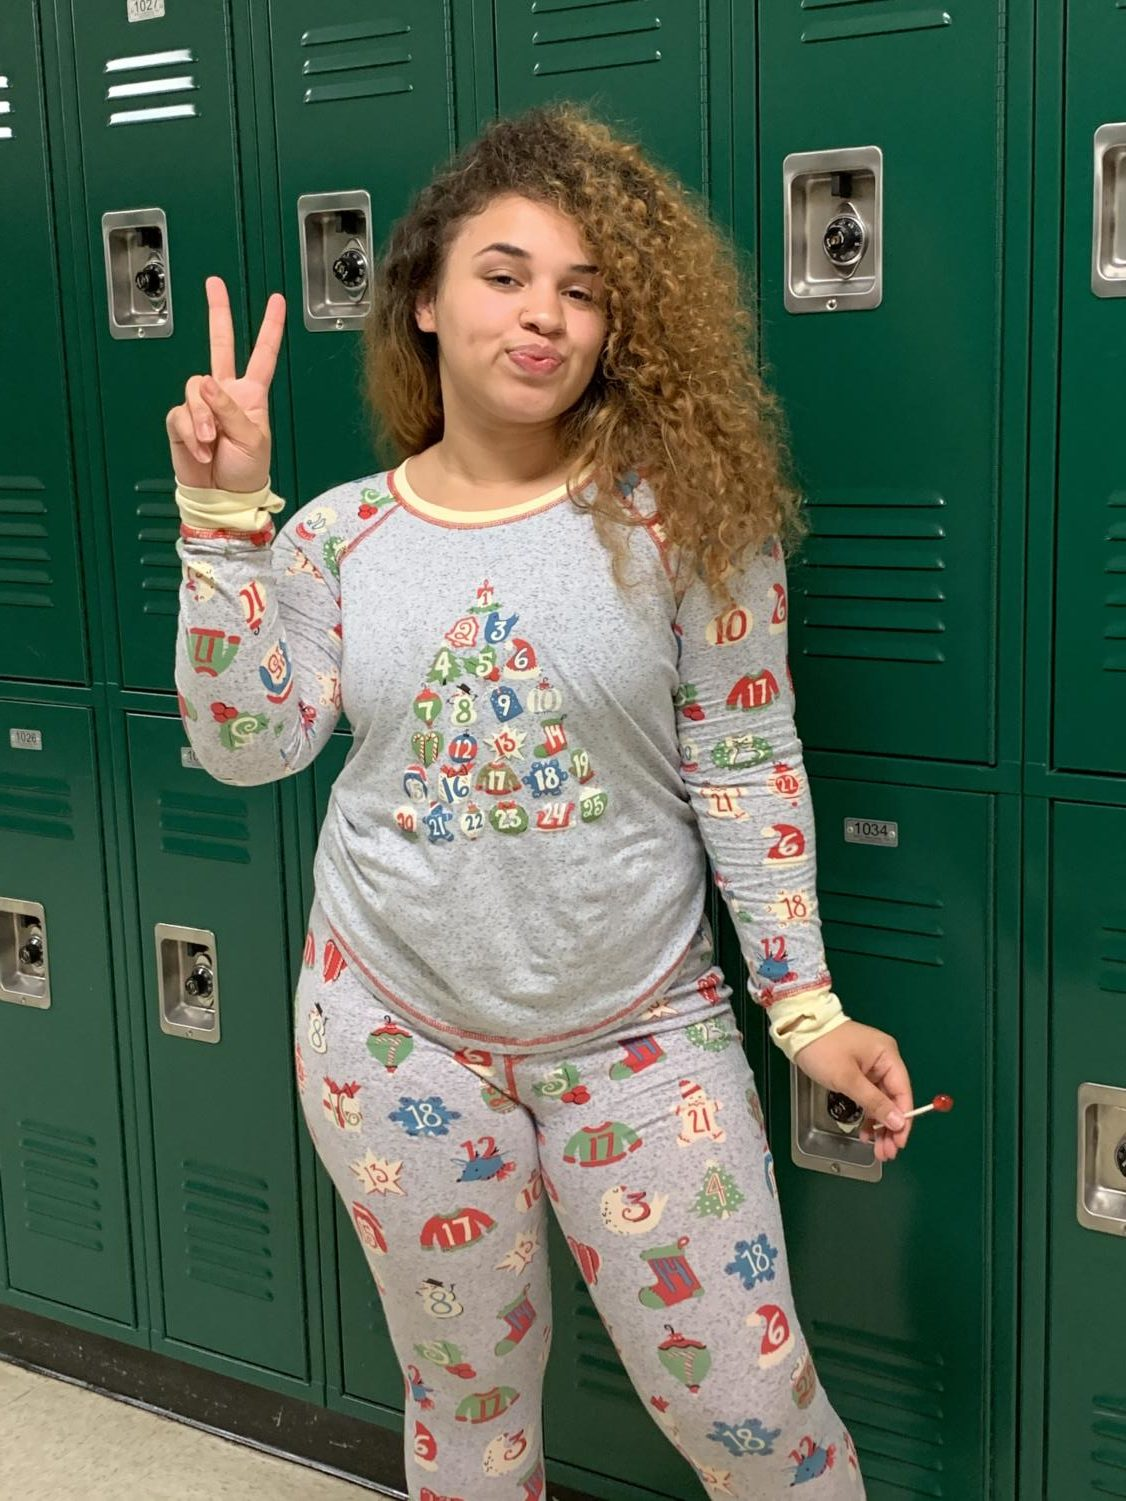 MaLiyah Hughes (12) posing in her Christmas themed outfit.